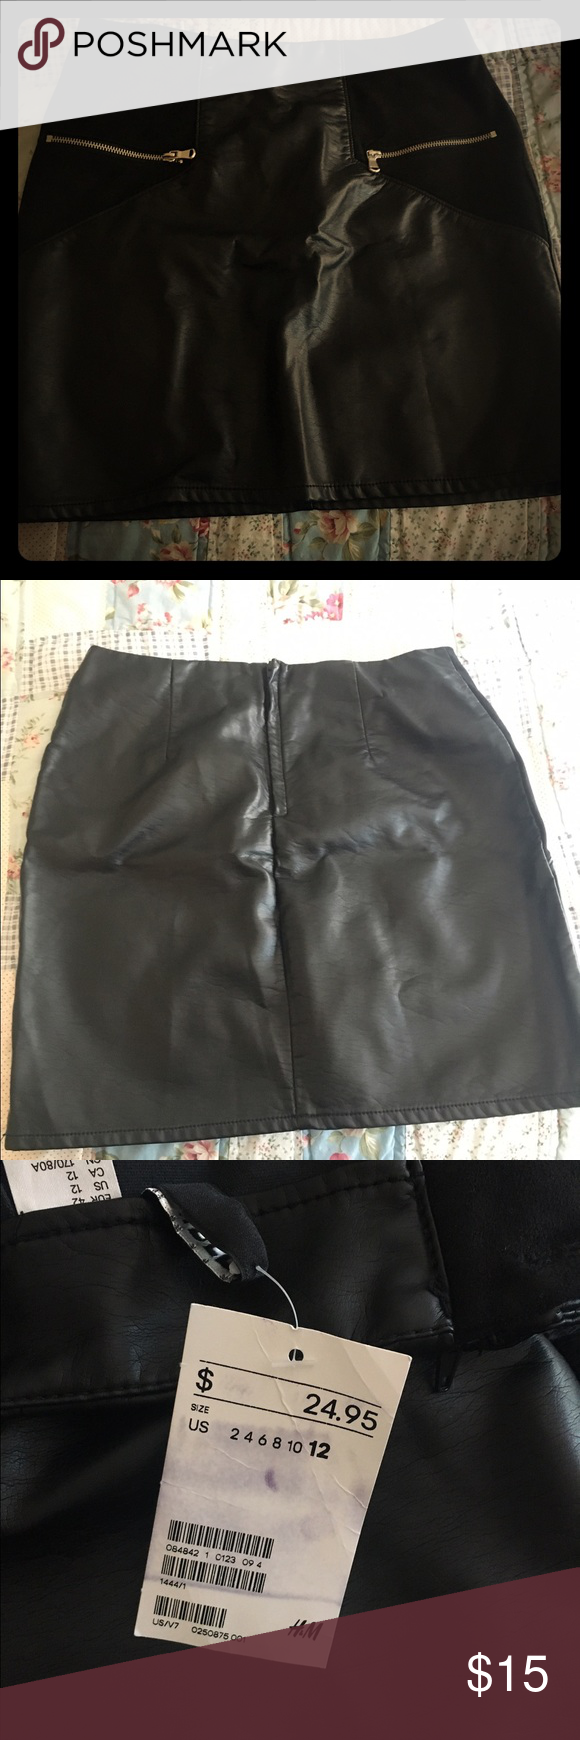 H&M Leather and fabric black skirt Faux Leather black skirt with fabric corners and pockets. NWB and NWT. I'm open to offers and PP and M. Happy shopping! H&M Skirts